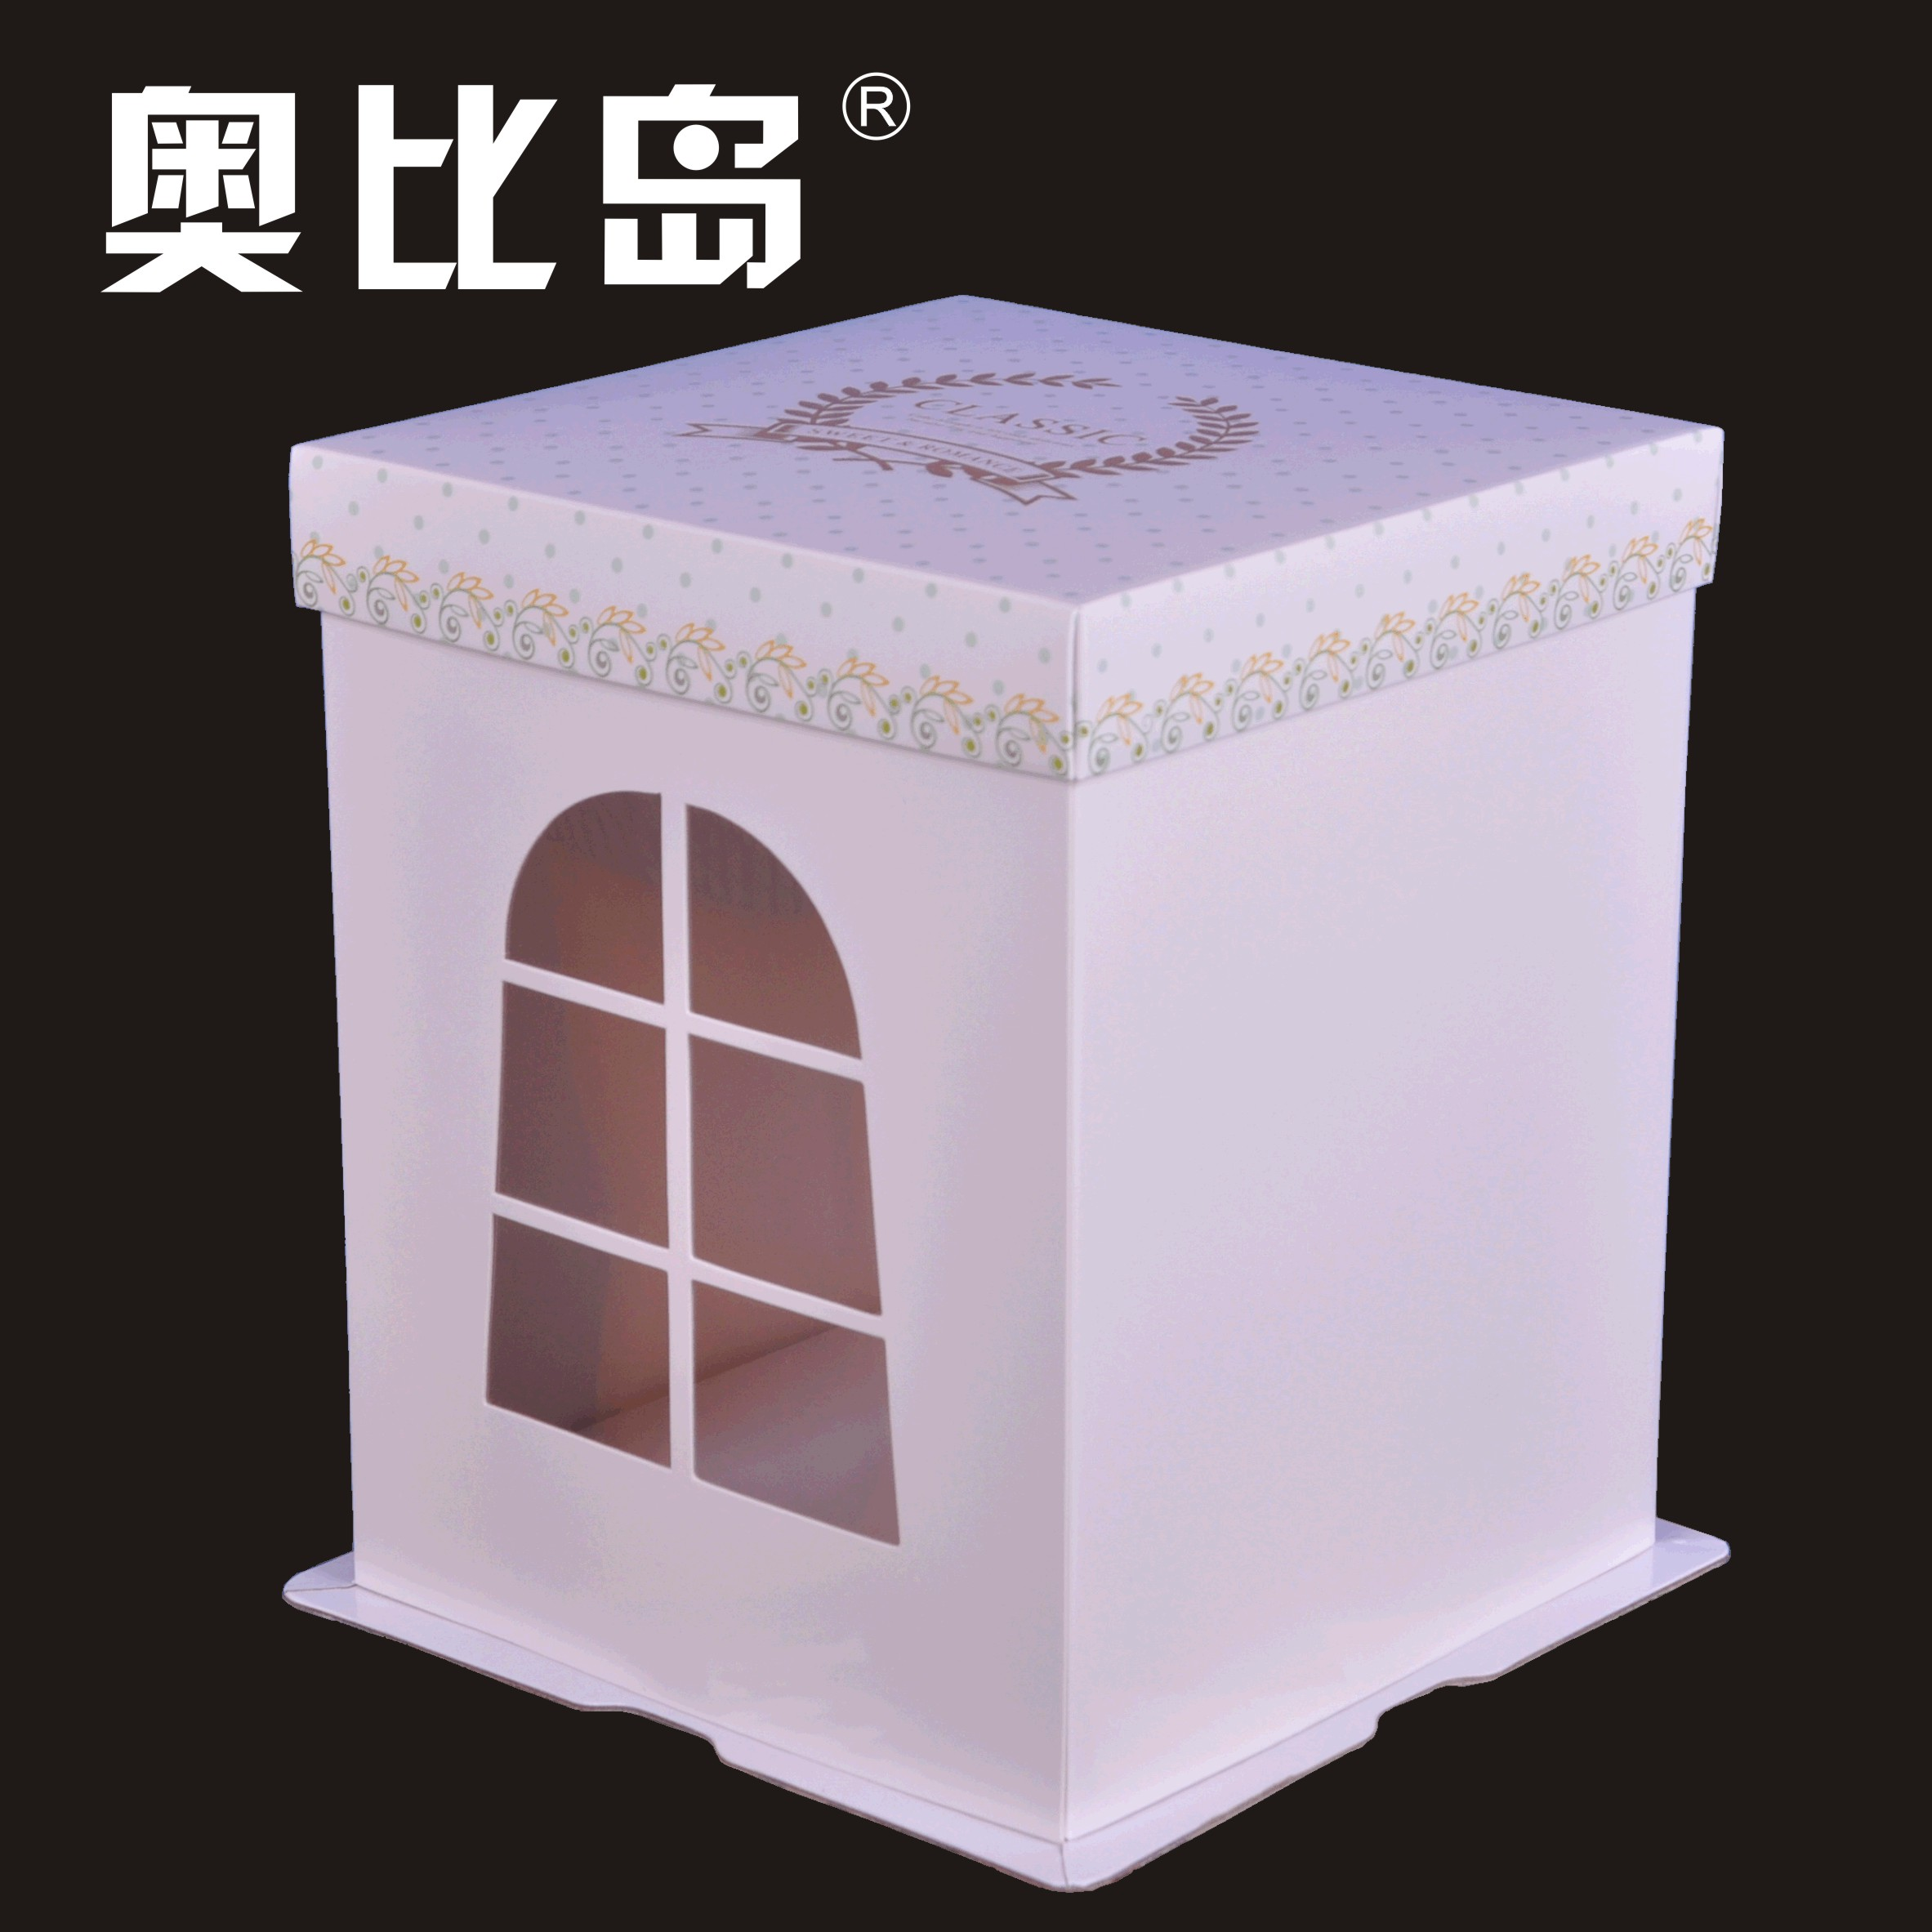 Buy Obi Island Special 6 Inch 8 10 12 Transparent Packaging Barbie Heightening Fondant Cake Birthday Box In Cheap Price On Malibaba